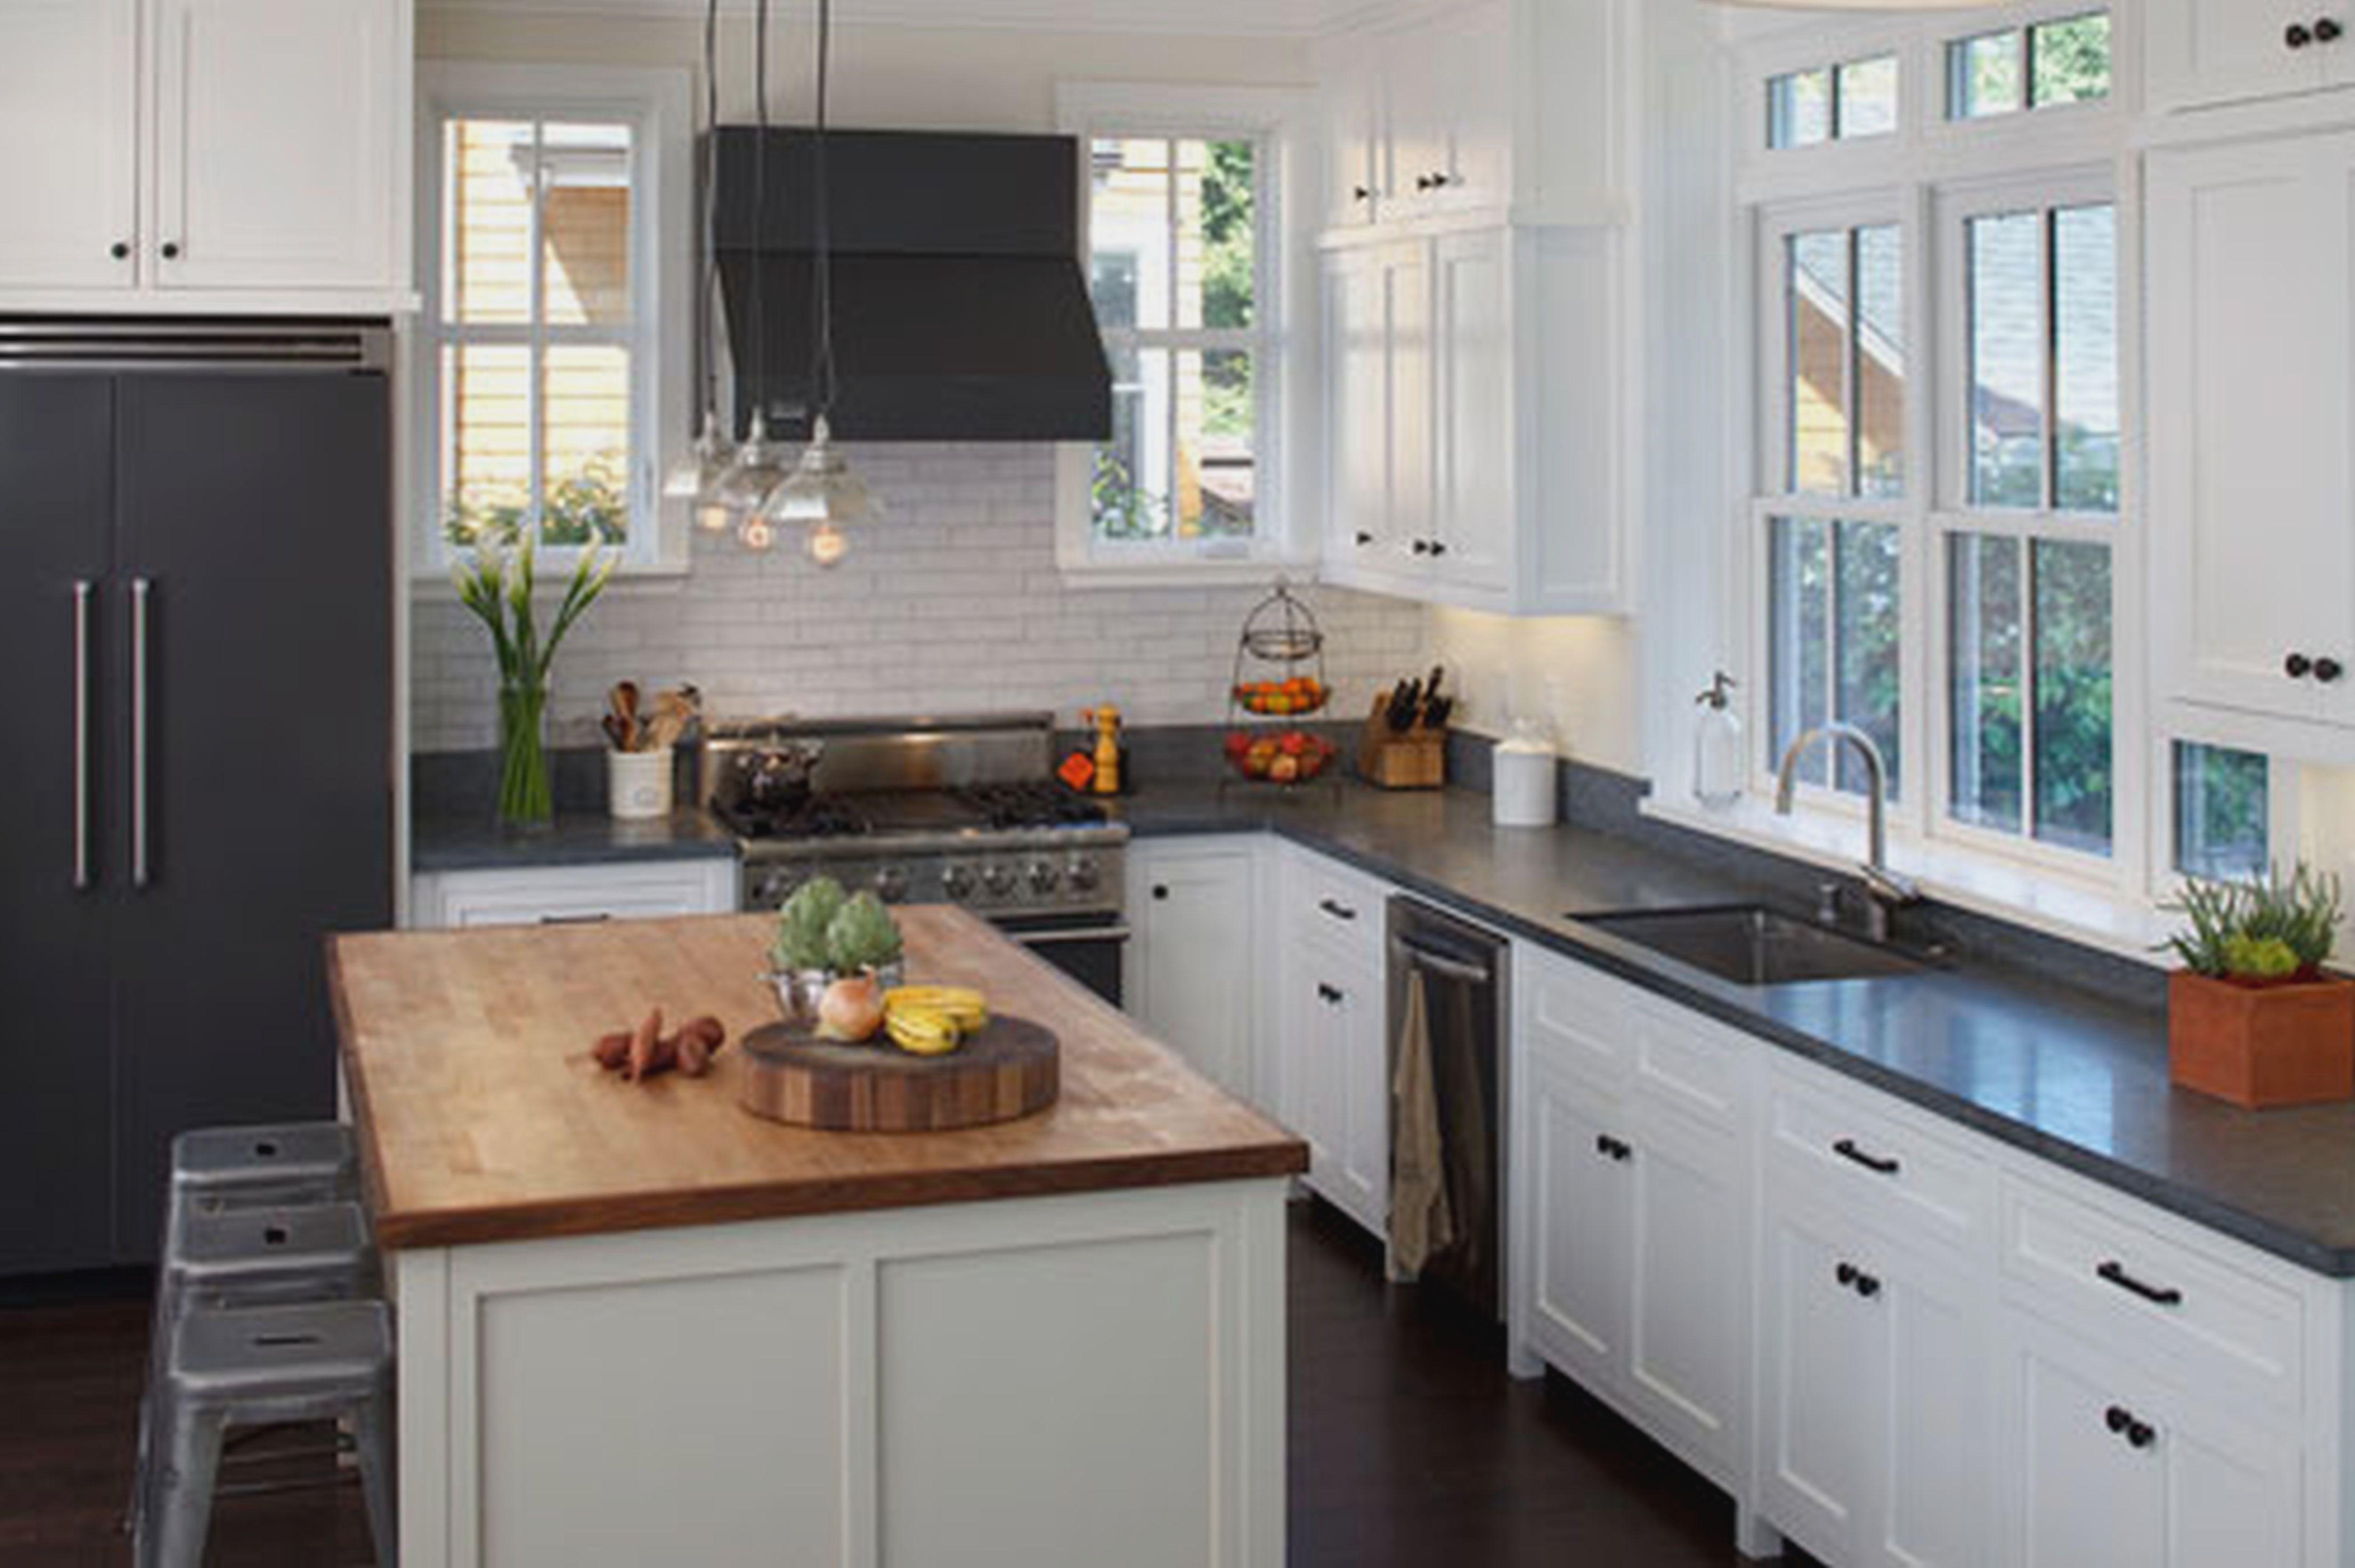 grey-kitchen-colors-with-white-cabinets-food-storage-baking-pastry